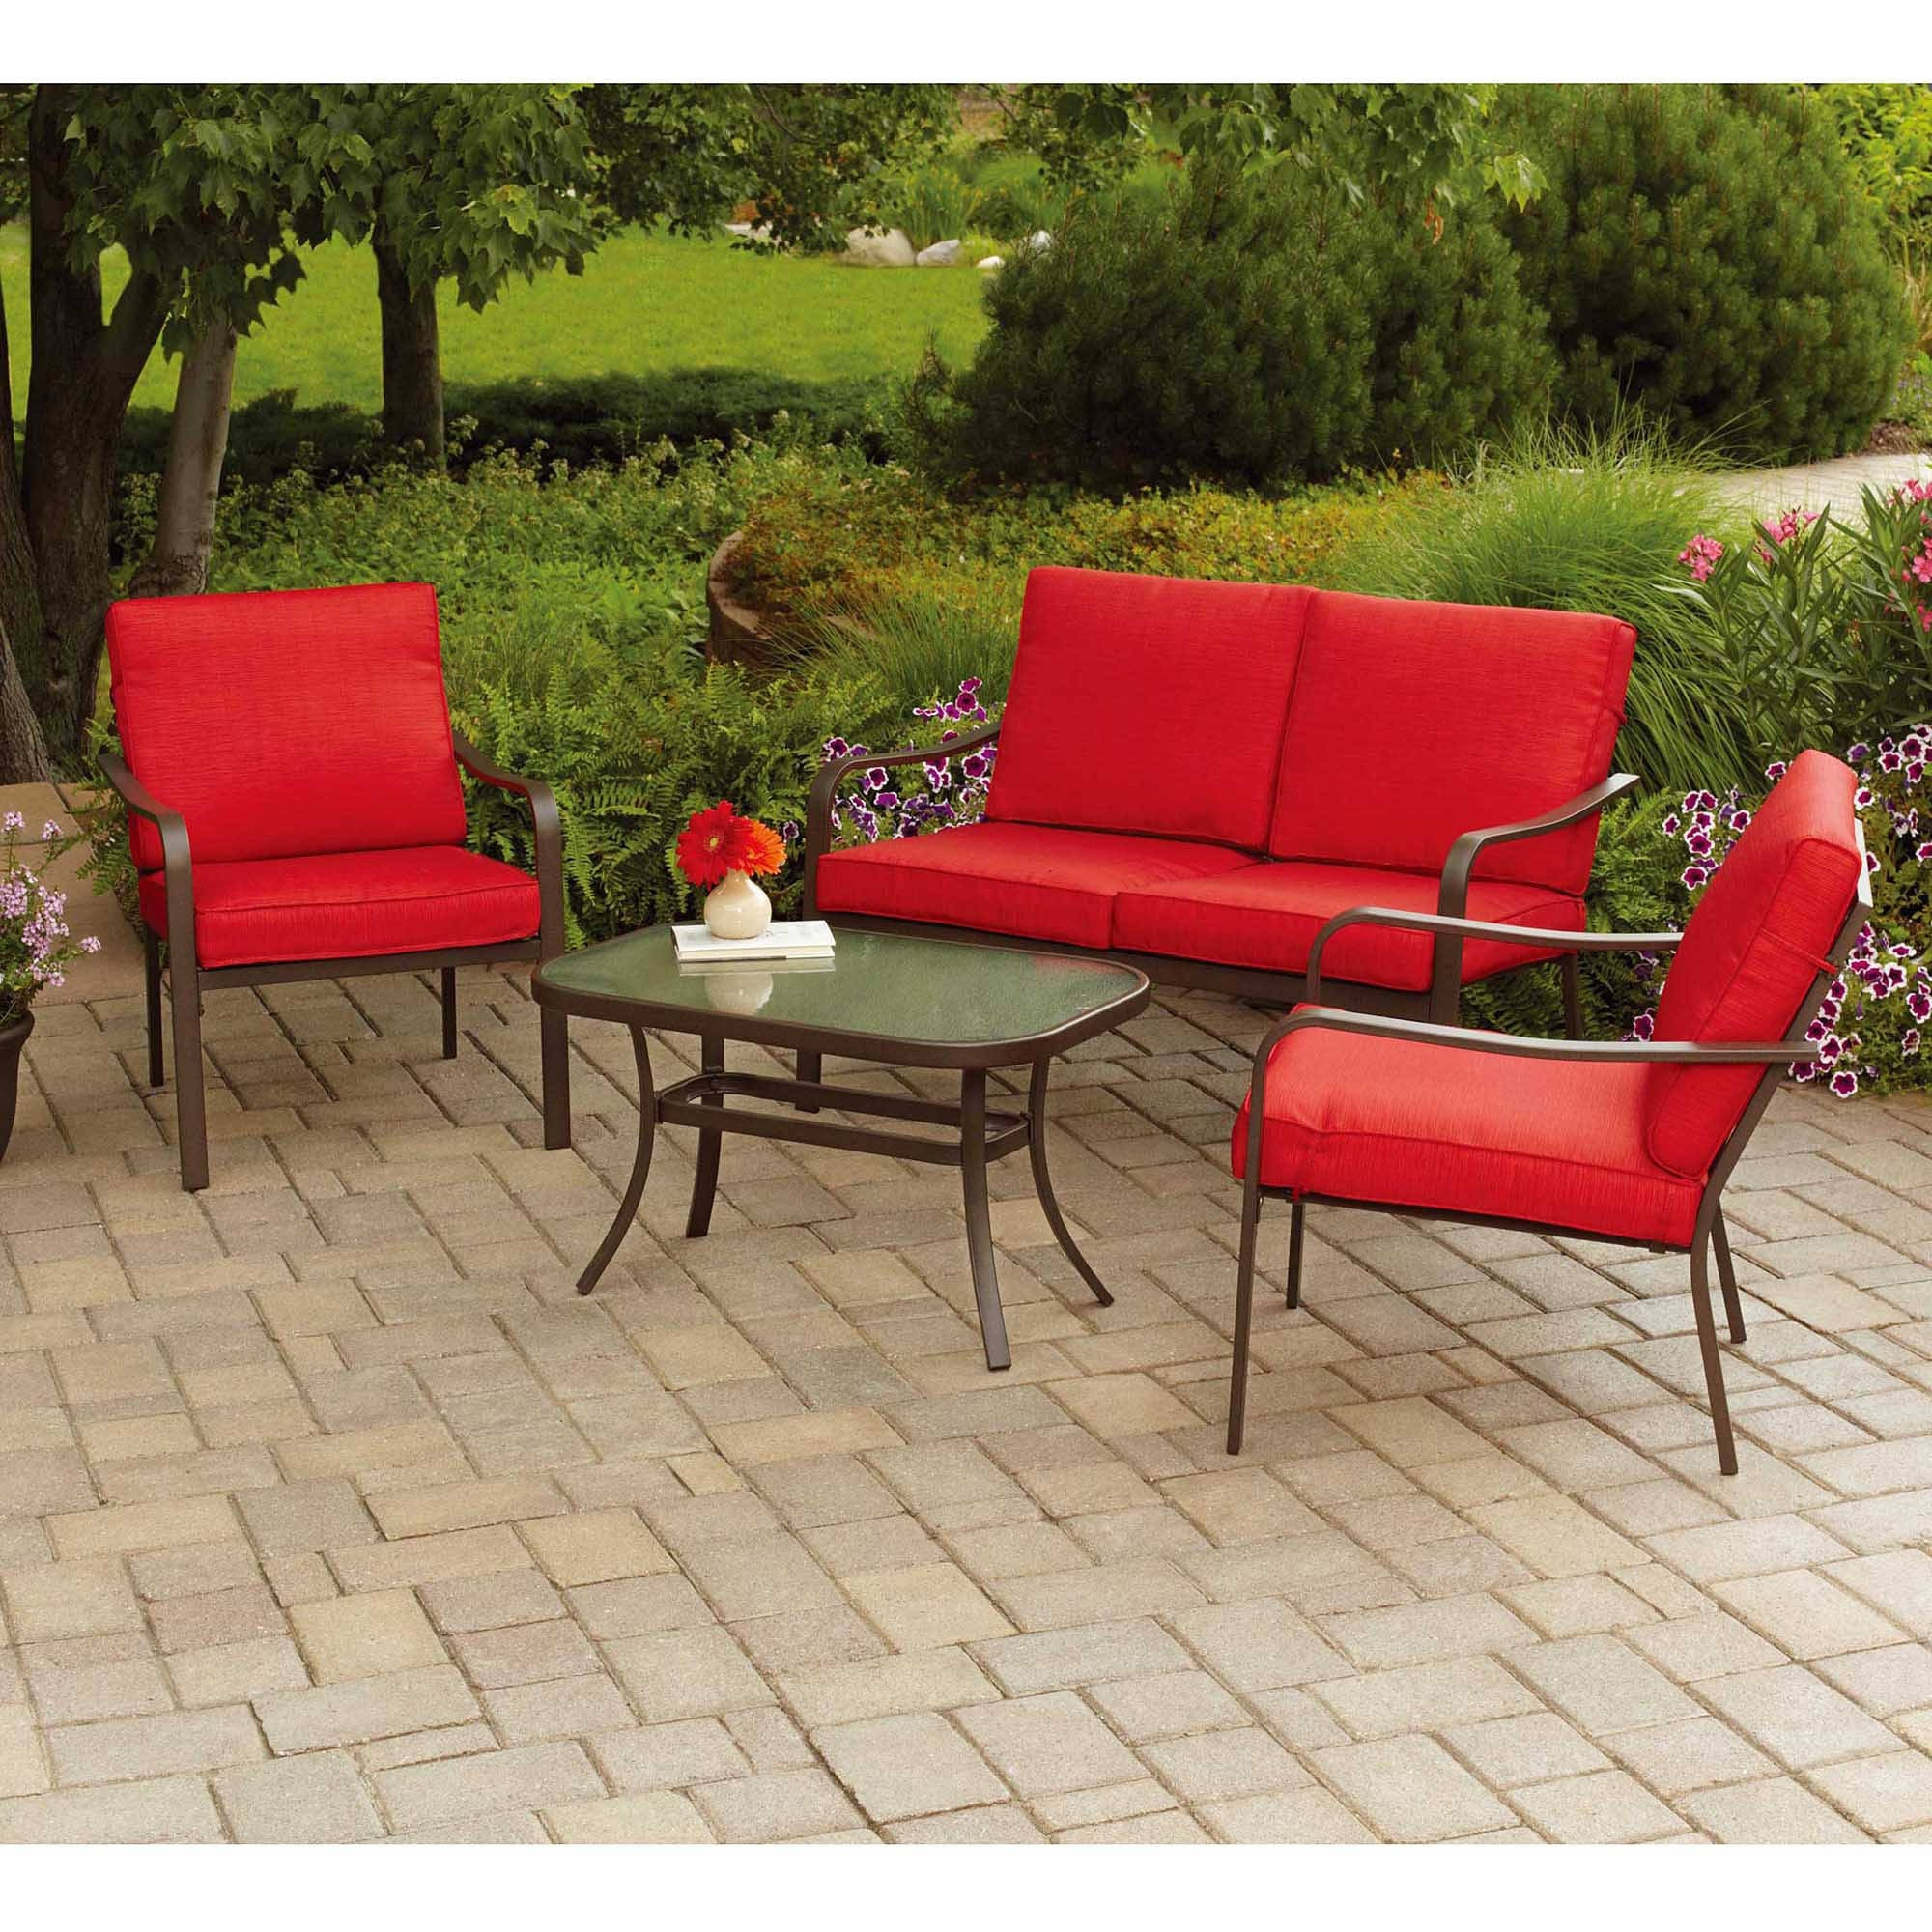 Mainstays Stanton Cushioned 4 Piece Patio Conversation Set, Seats 4 Within Fashionable Sears Patio Furniture Conversation Sets (View 5 of 20)